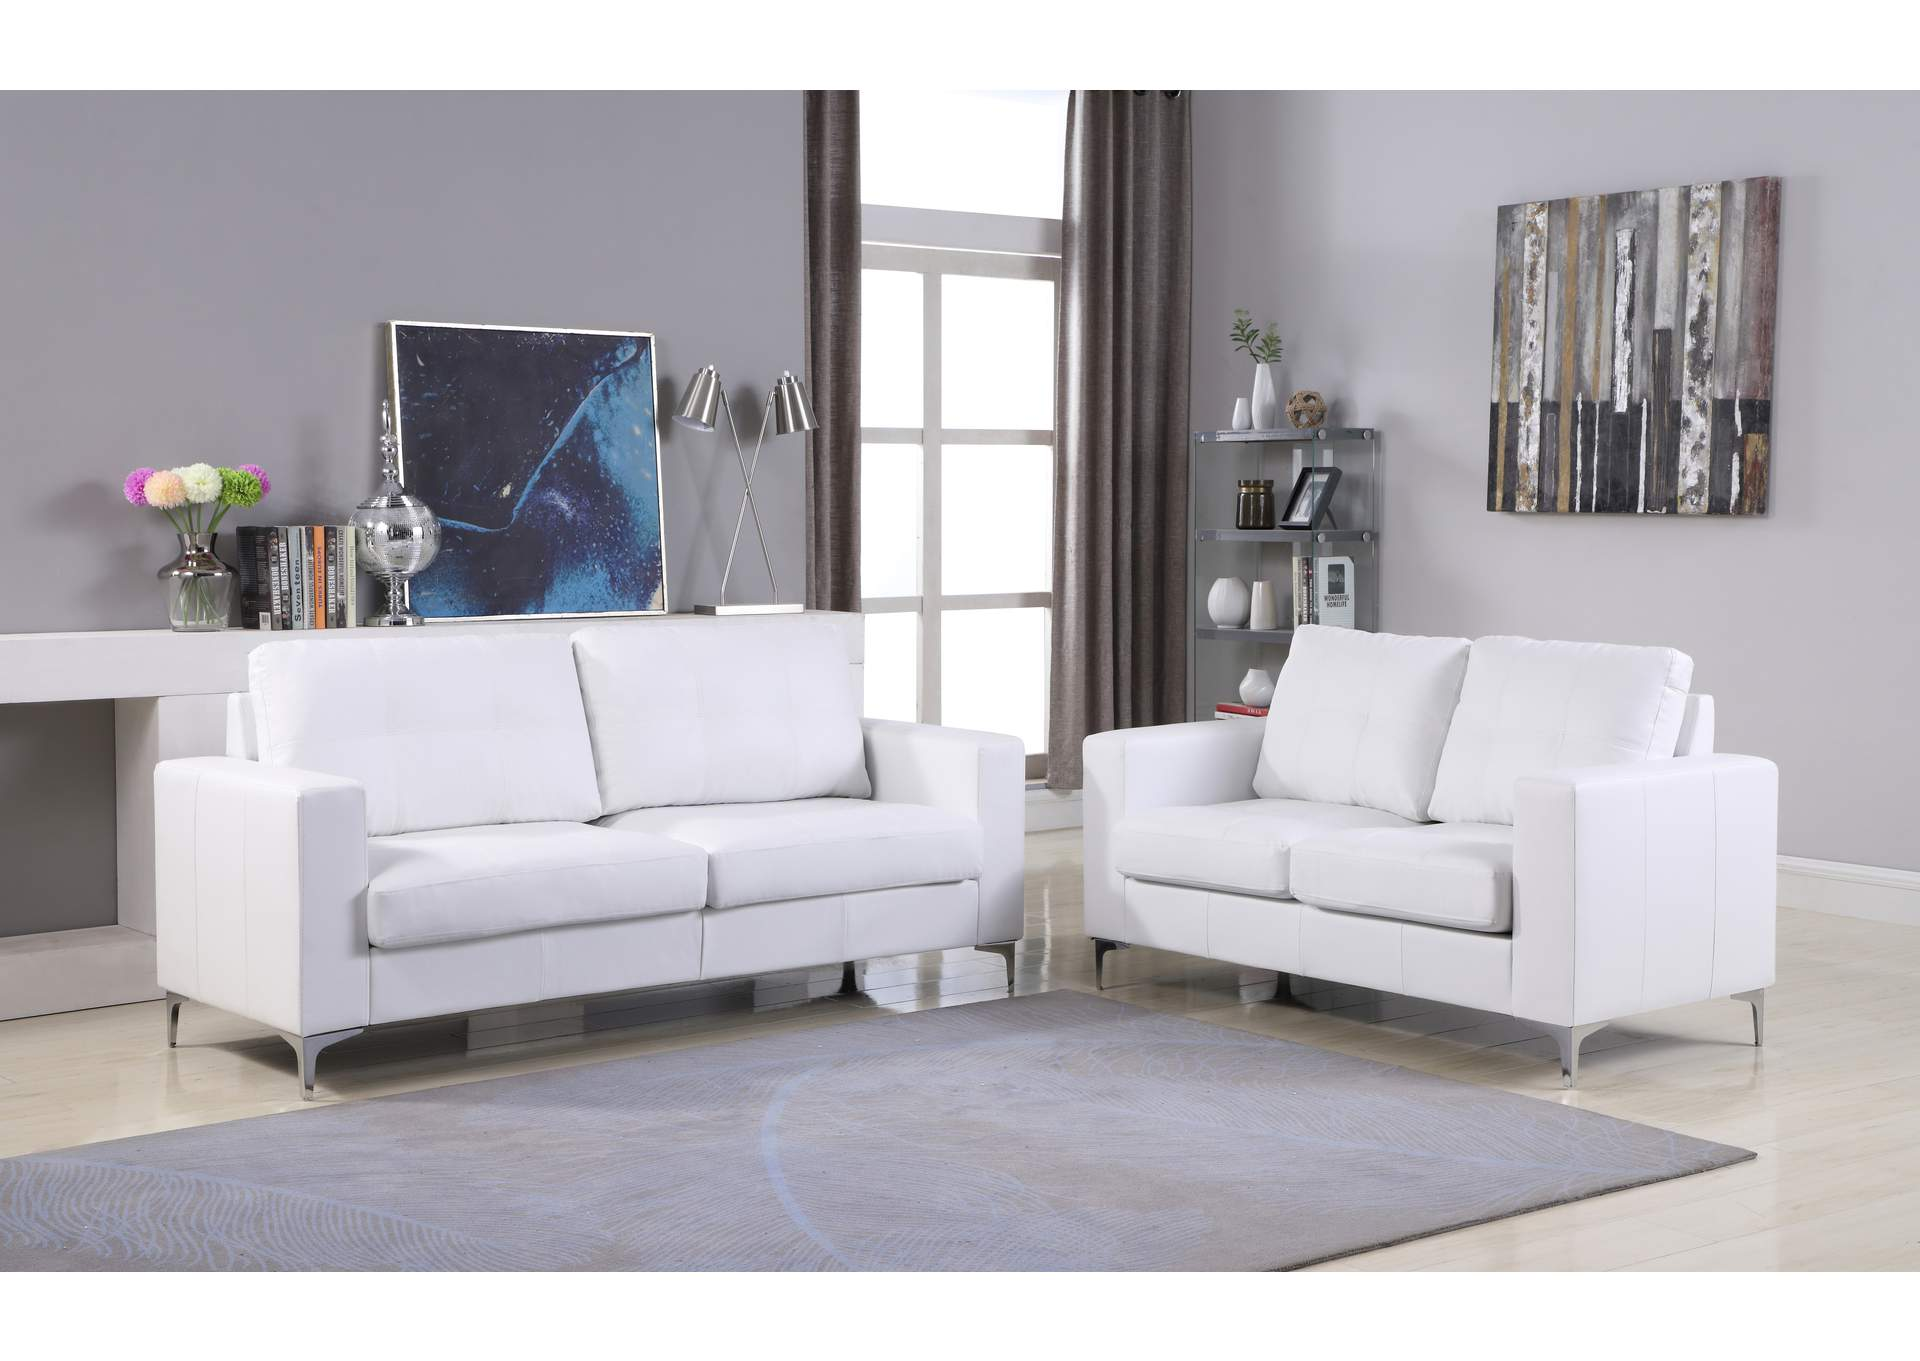 White Contemporary Leather Sofa (White) With Chrome Leg,Global Trading